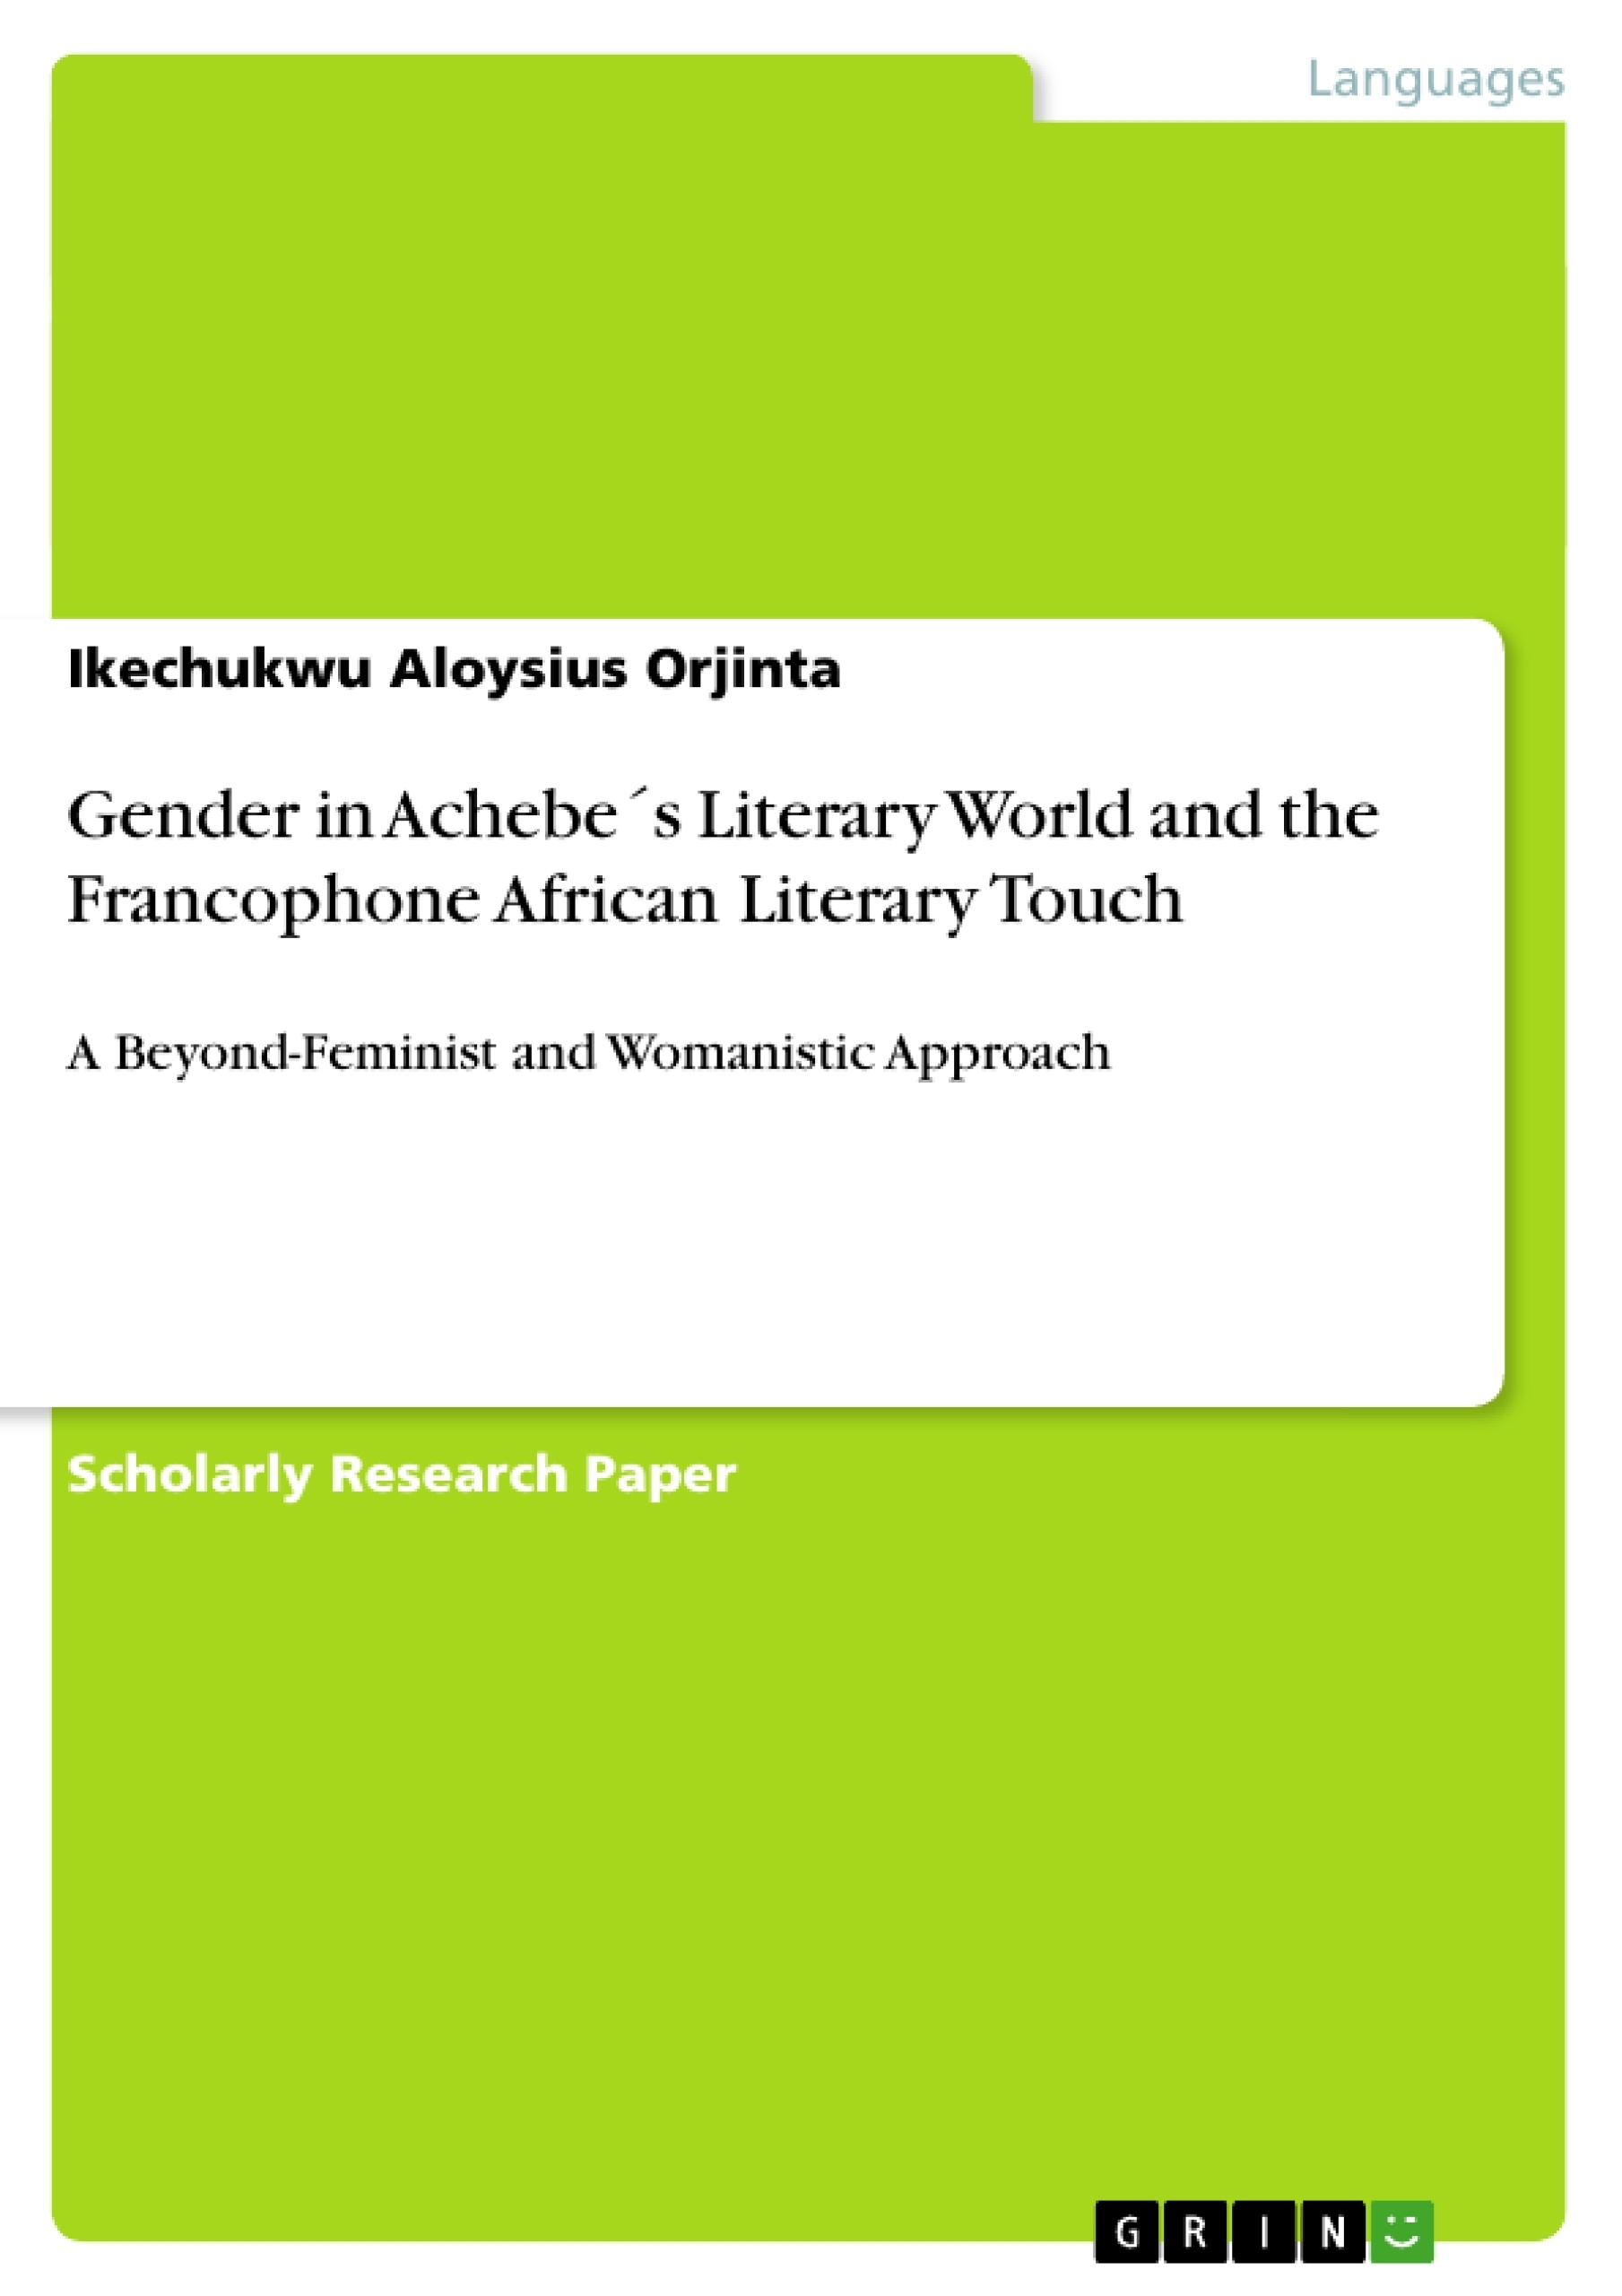 gender in achebe acute s literary world and the francophone african gender in achebeacutes literary world and the francophone african publish your master s thesis bachelor s thesis essay or term paper